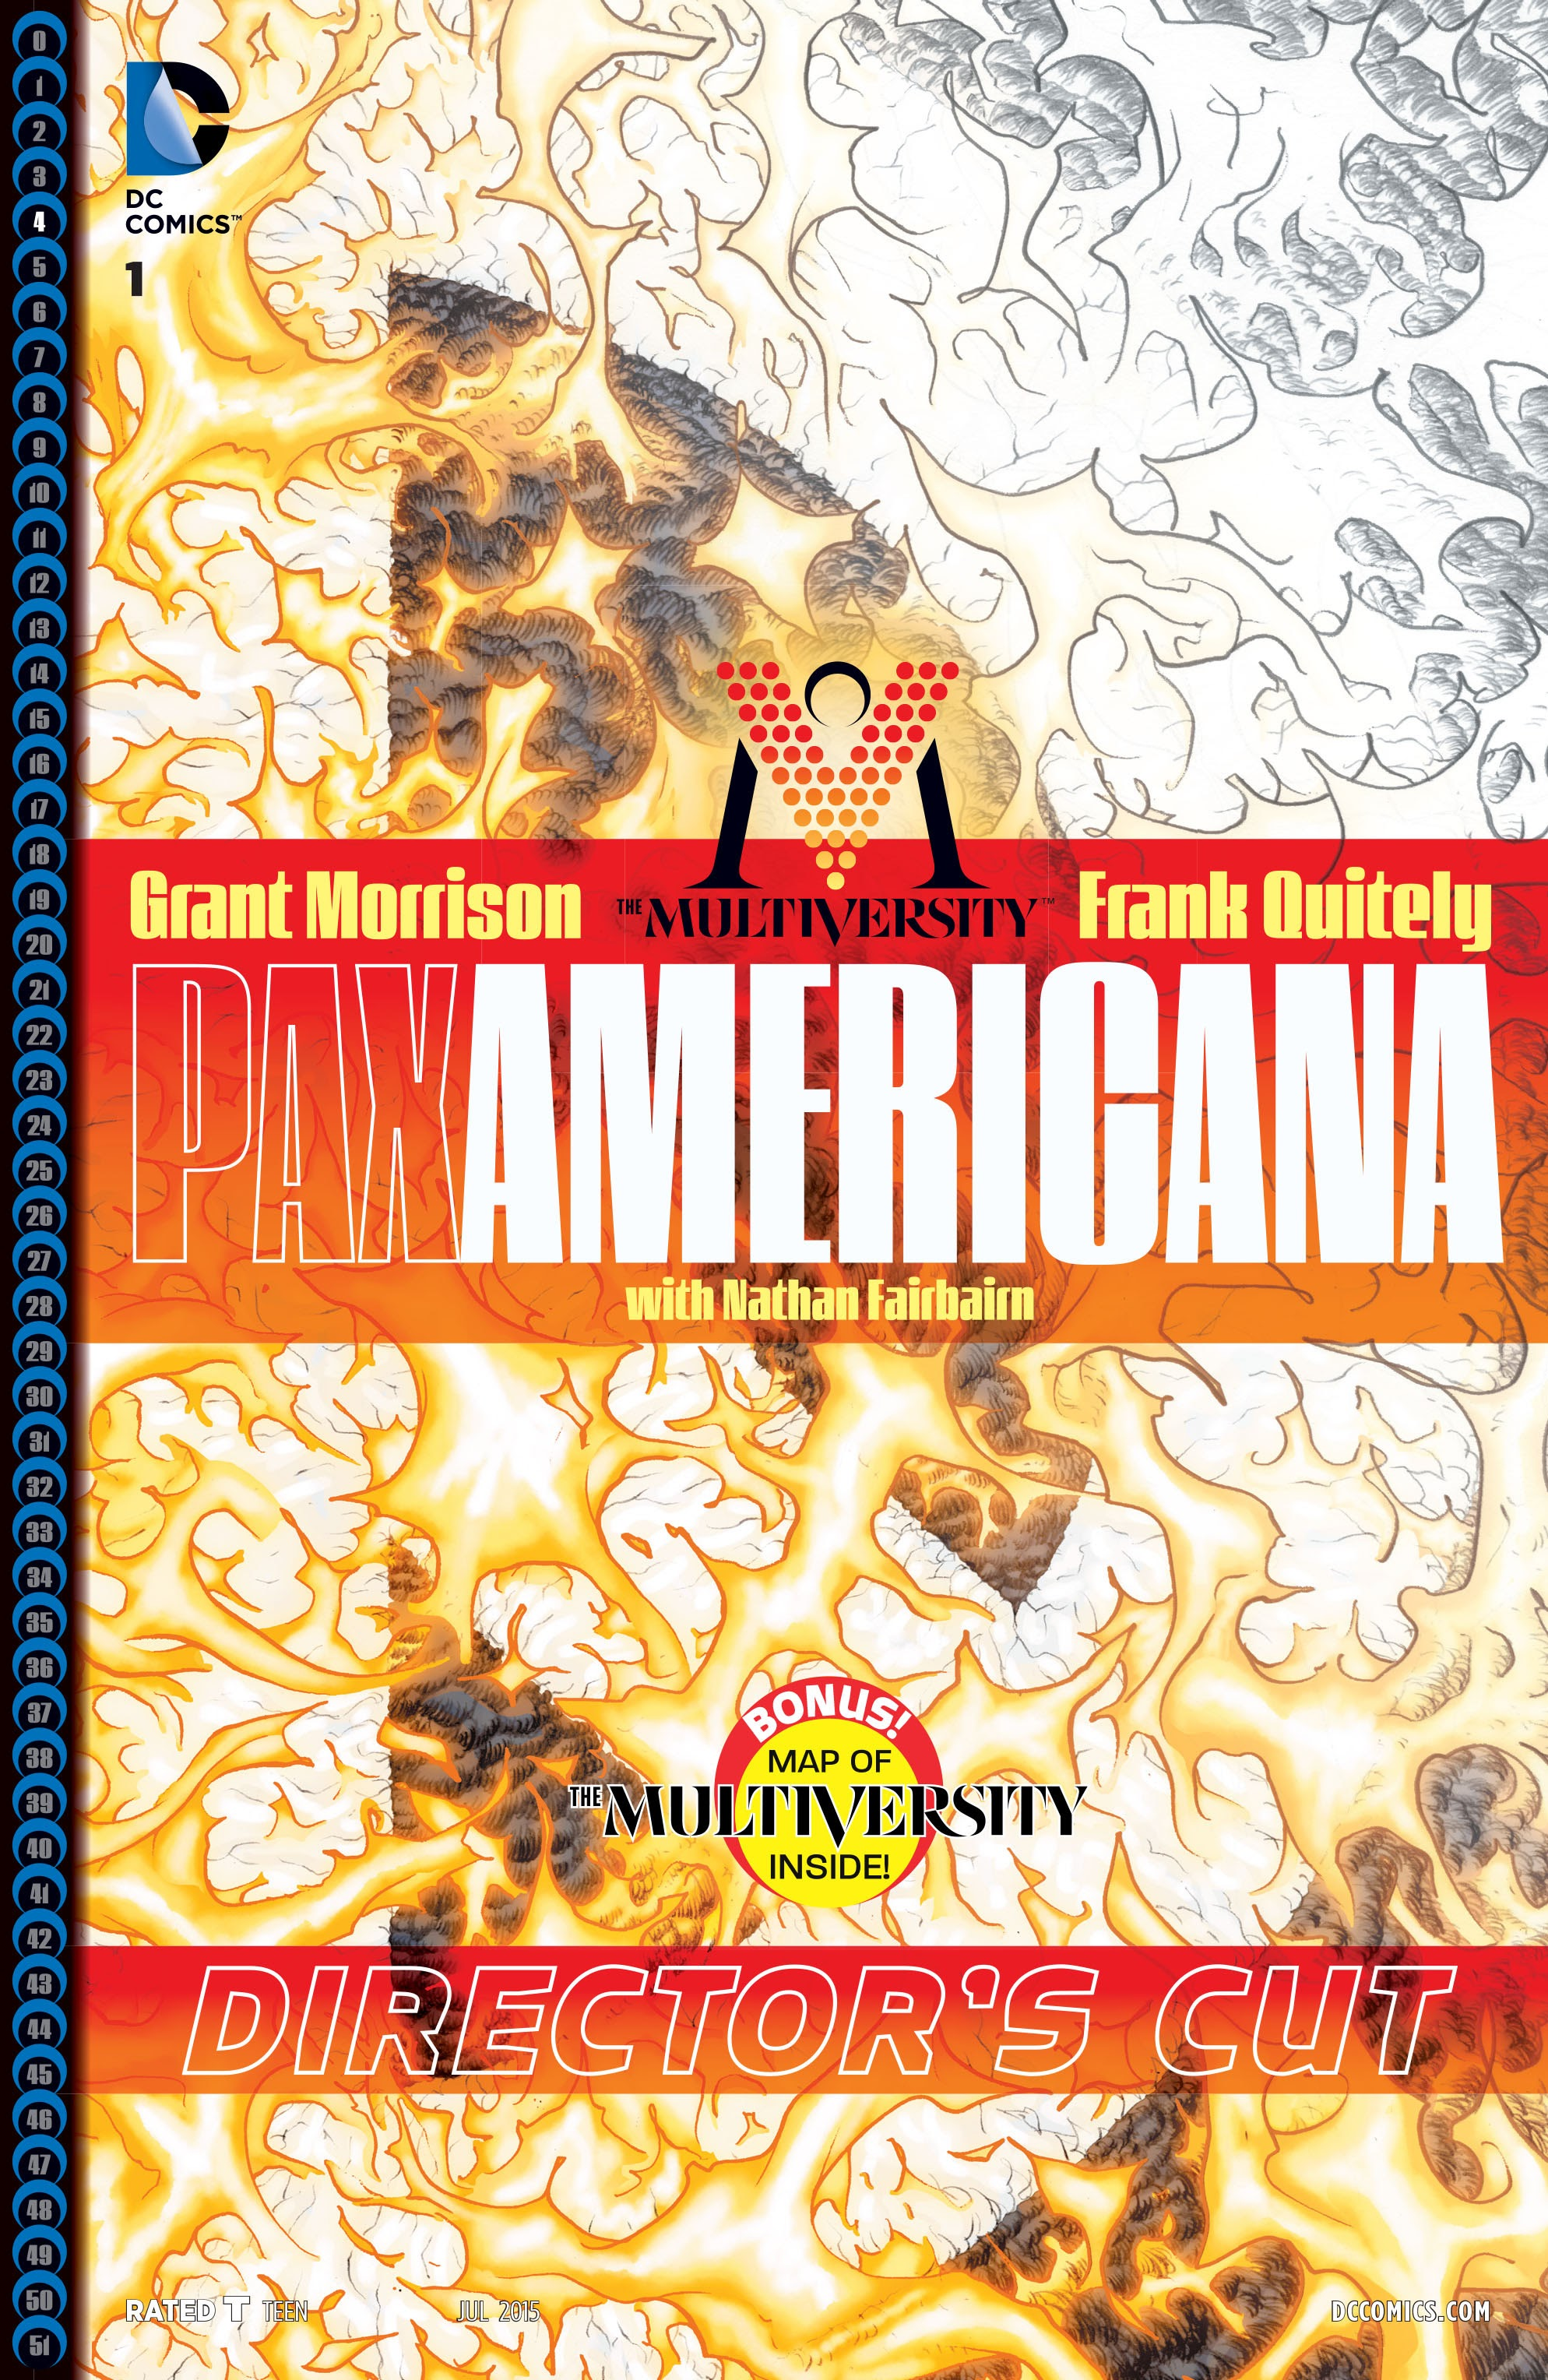 The Multiversity: Pax Americana issue _Directors_Cut - Page 1